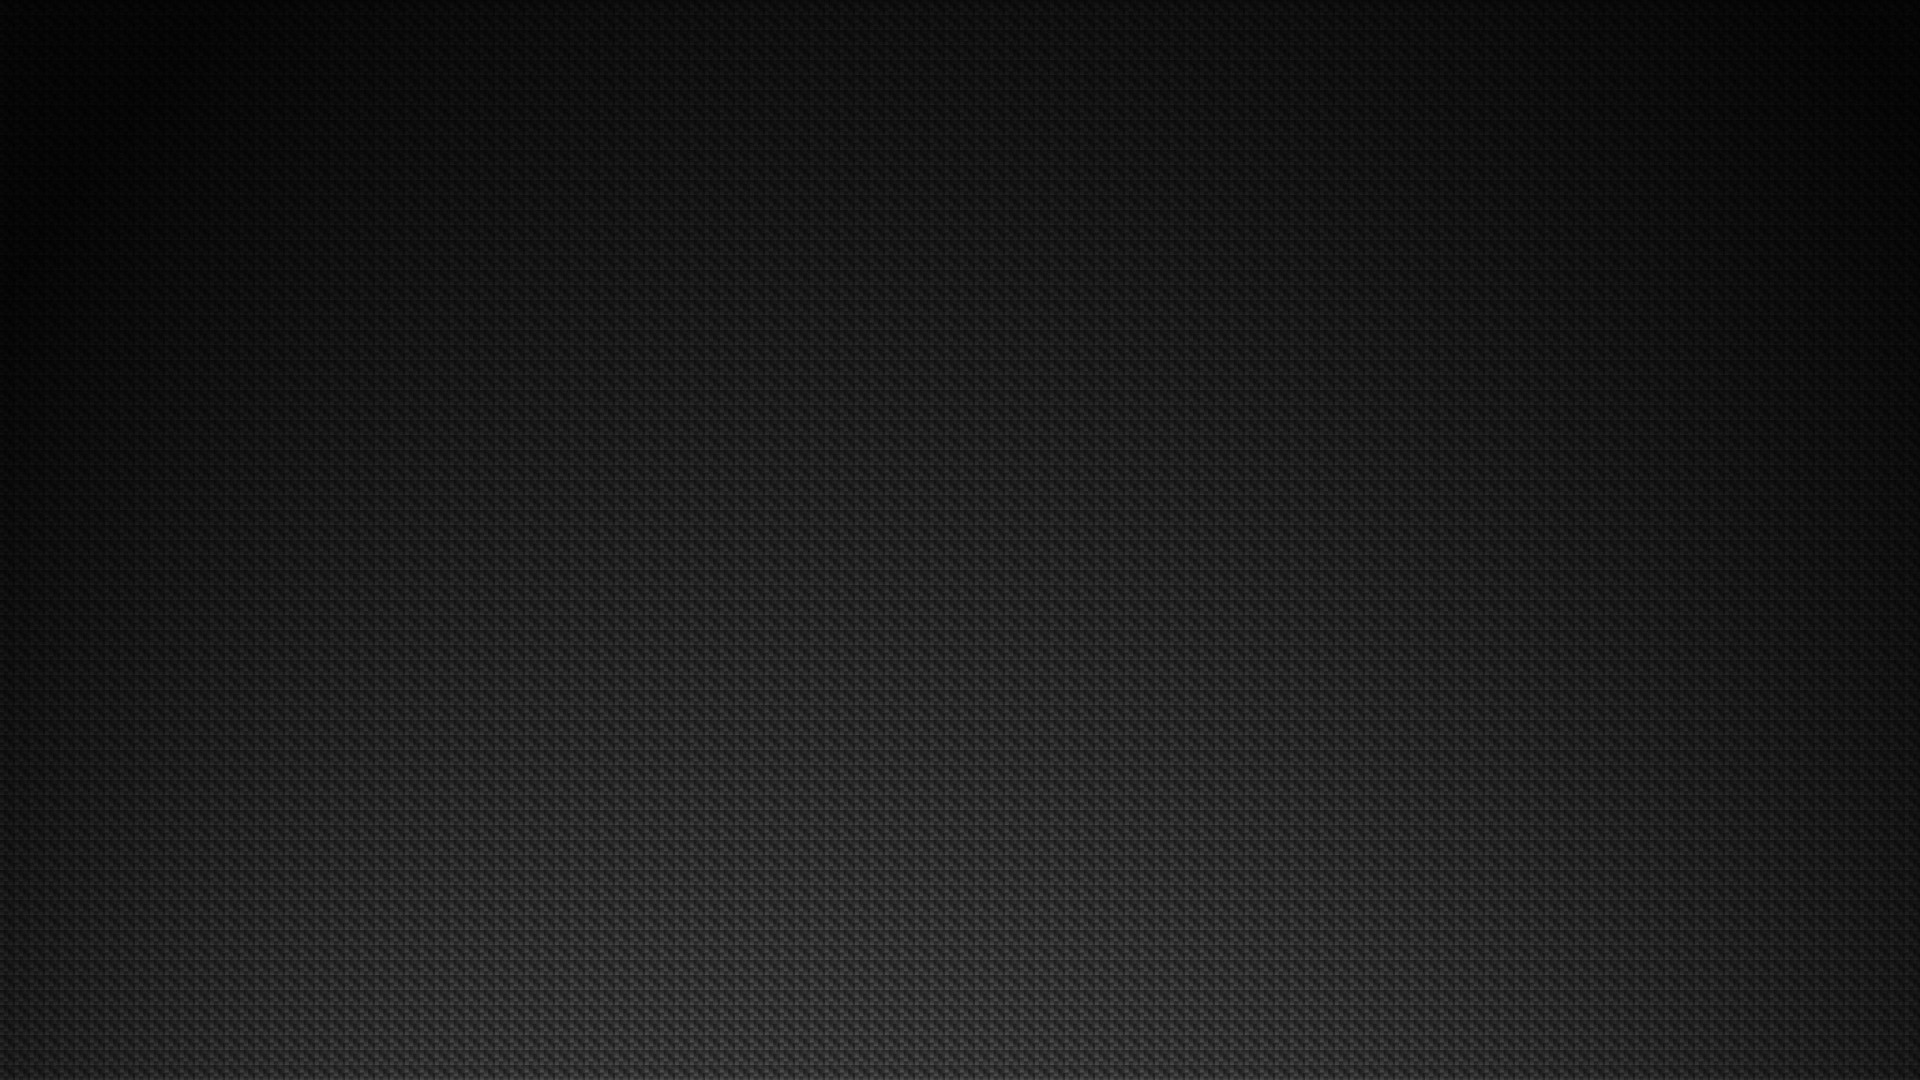 Res: 1920x1080, Texture Pattern Carbon Black Abstract 1080p HD Wallpaper Background